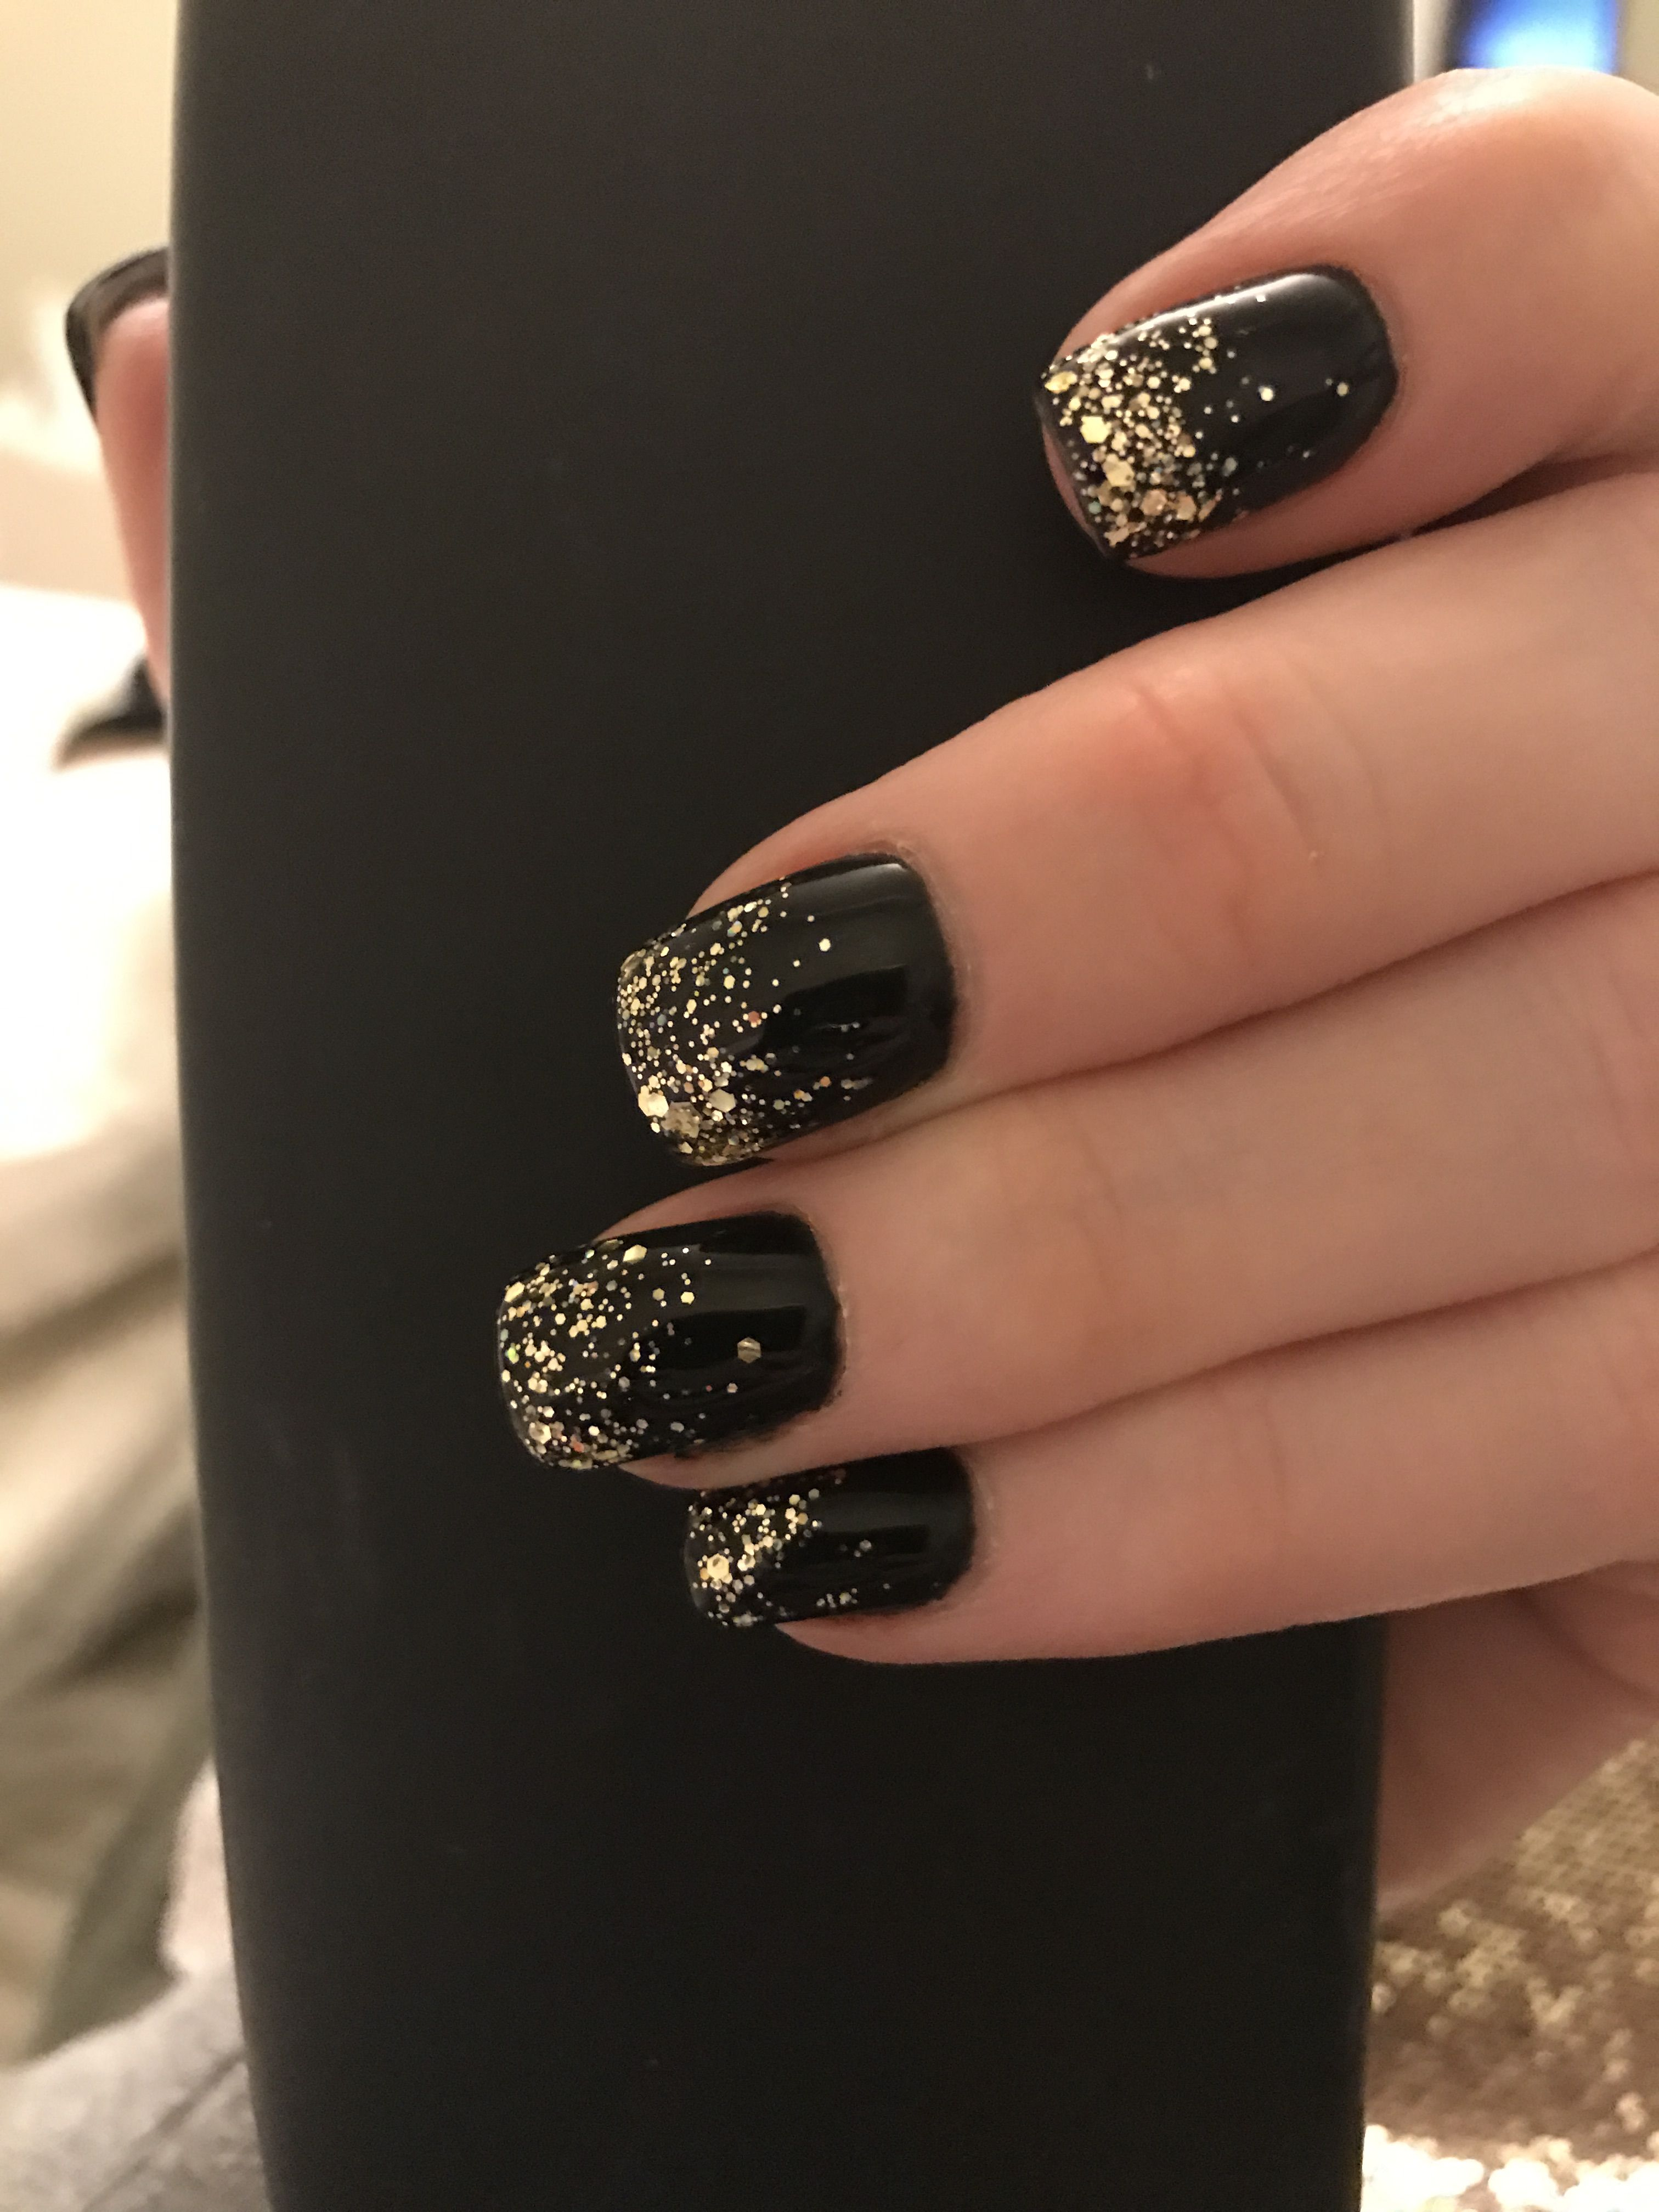 Black Polish With Gold Tips That Trickle Down The Nail One Of My Faves